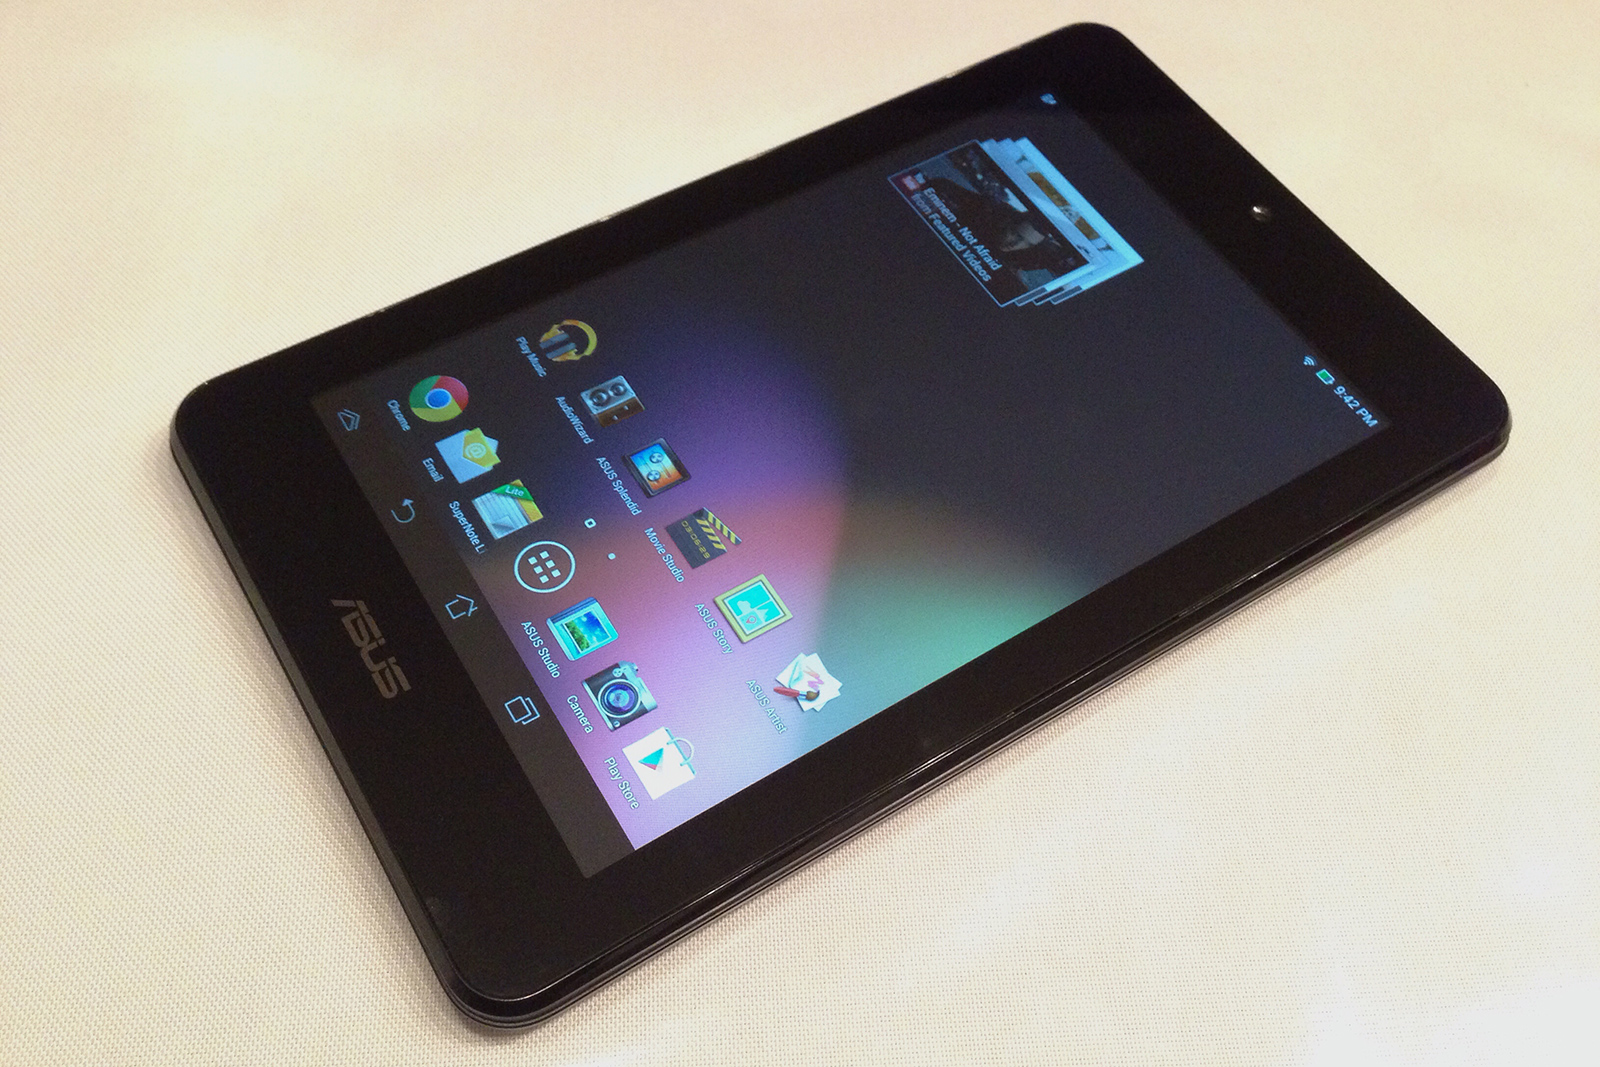 1392758224544 - Test de la tablette Asus Memo Pad HD 7